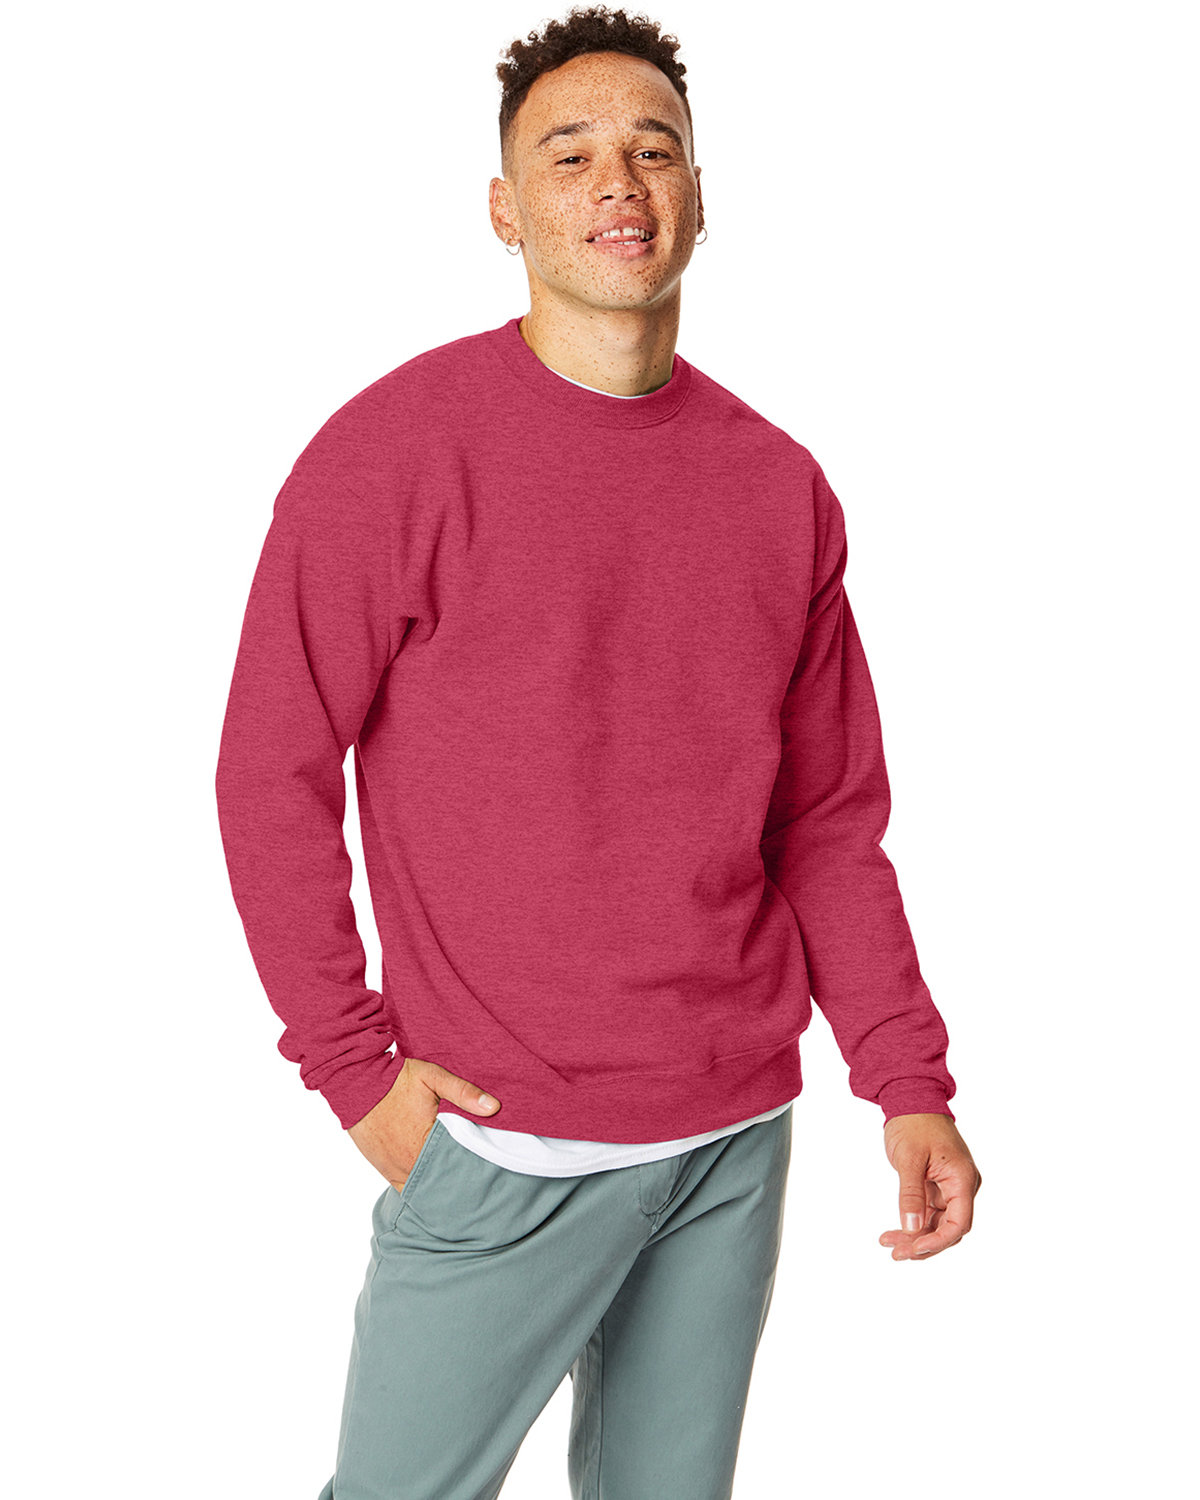 Hanes Unisex 7.8 oz., Ecosmart® 50/50 Crewneck Sweatshirt HEATHER RED